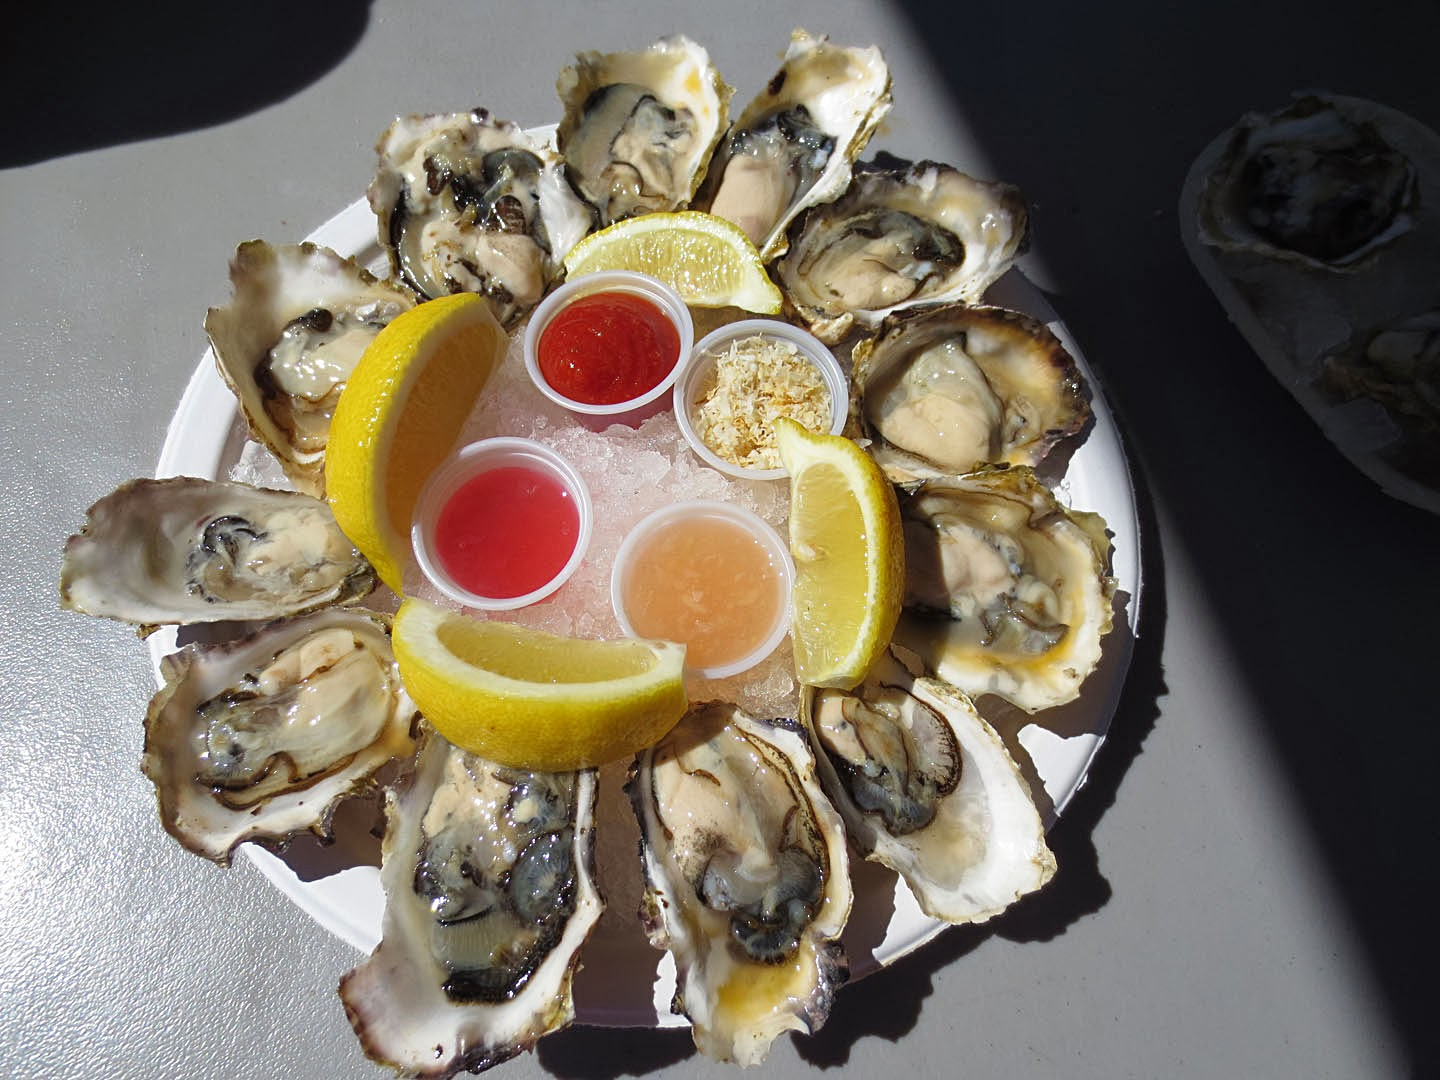 Raw oysters served with 3 types of vinaigrette, horseradish, and lemons